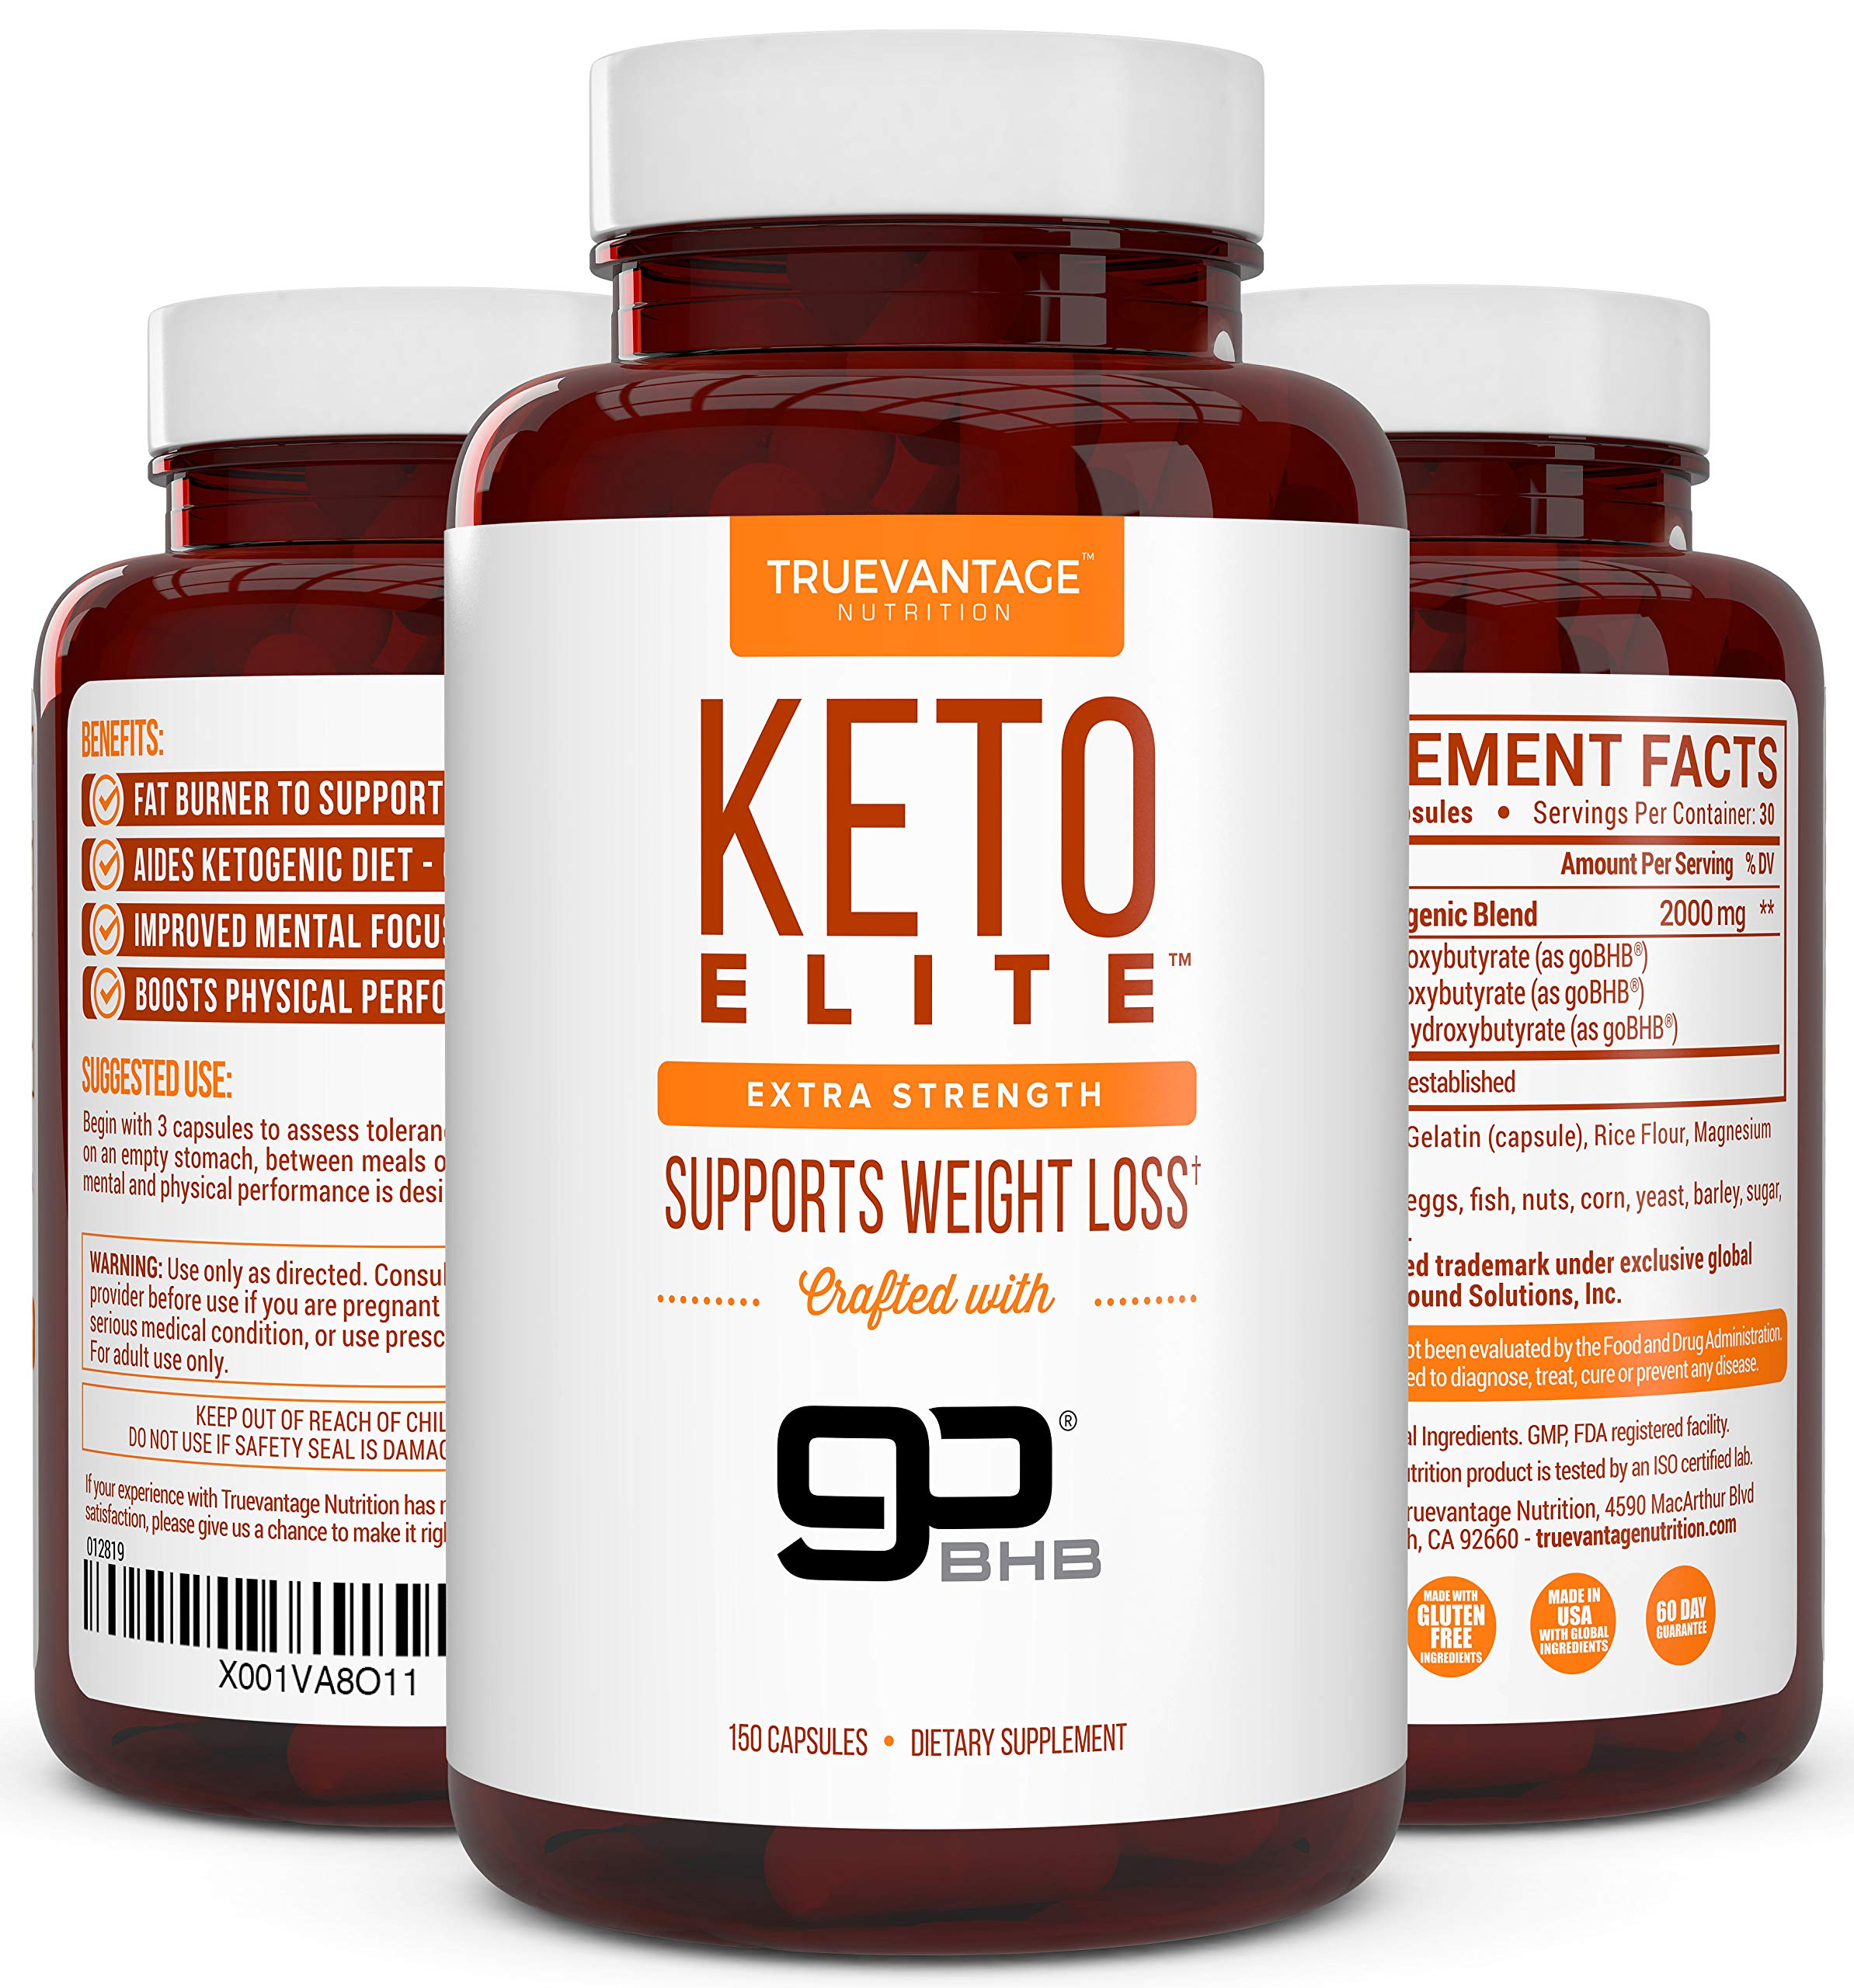 Keto Diet Pills 2000mg- Ketosis Pill for Fat Burn, Weight Loss, Energy and Focus -Patented goBHB Diet Supplement with Exogenous Ketones- Beta-Hydroxybutyrate- Keto BHB by Truevantage Nutrition